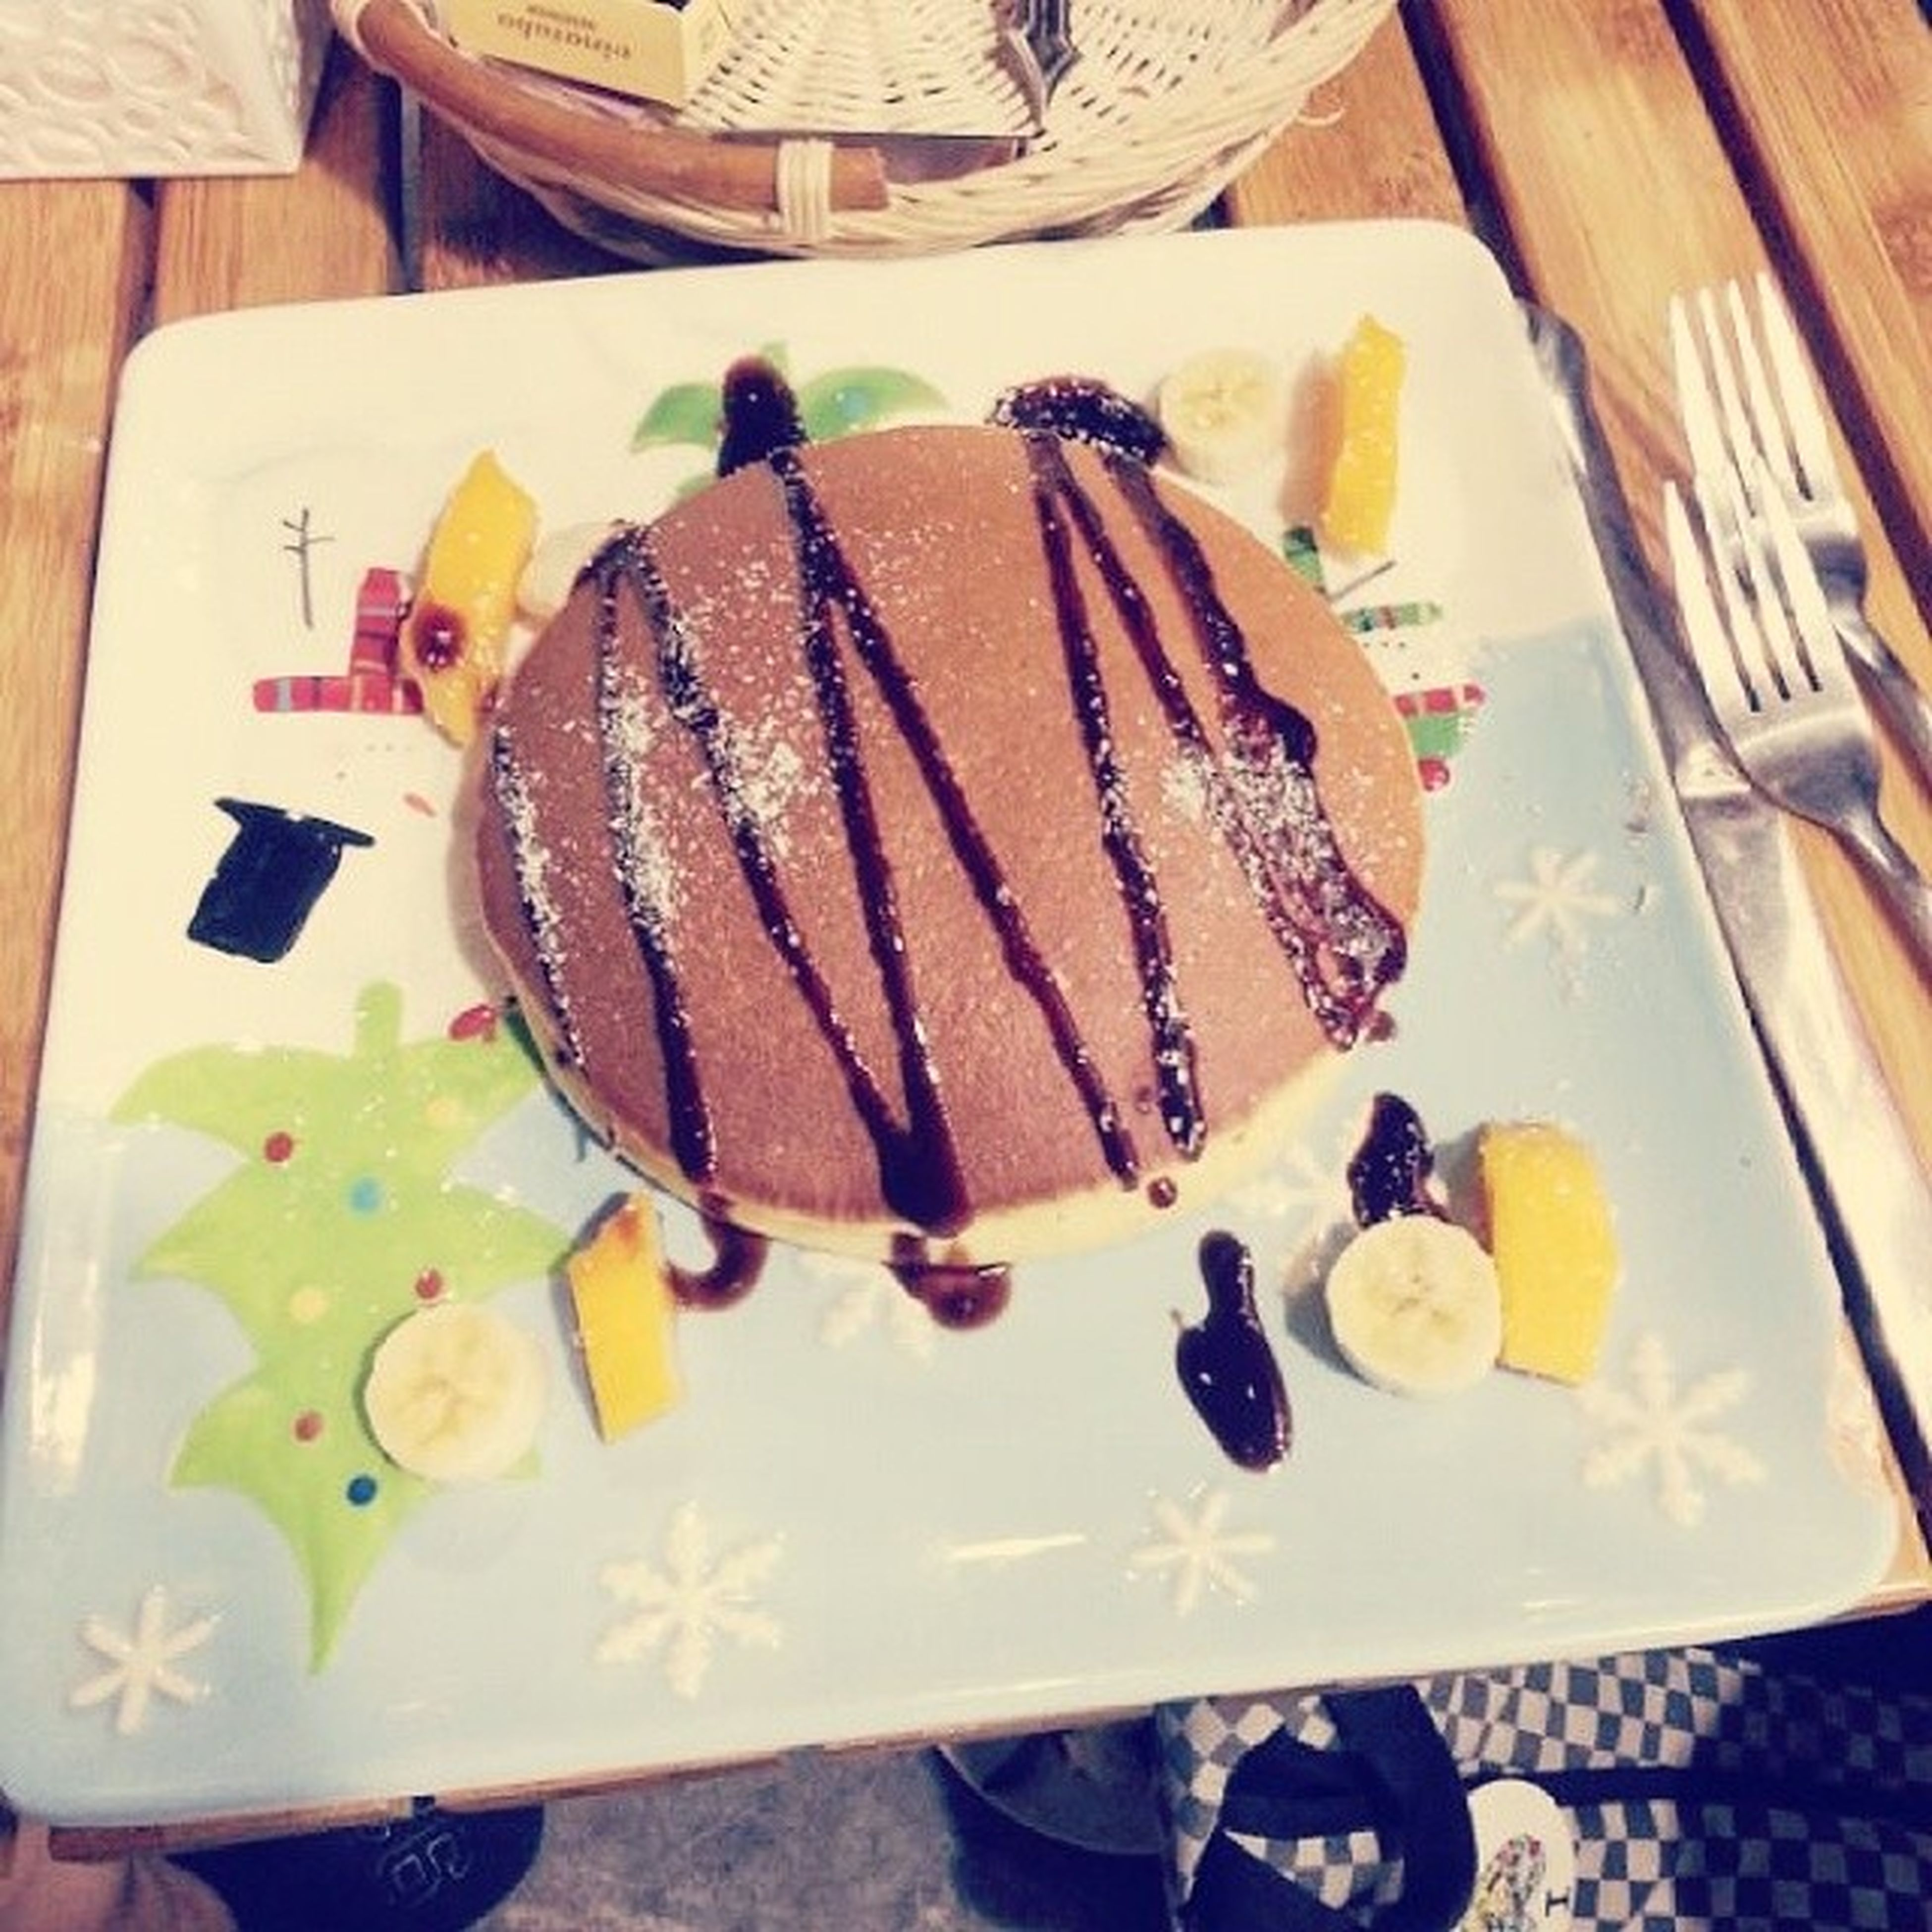 food and drink, indoors, food, sweet food, table, freshness, still life, dessert, ready-to-eat, indulgence, unhealthy eating, plate, high angle view, cake, temptation, fruit, close-up, chocolate, serving size, variation